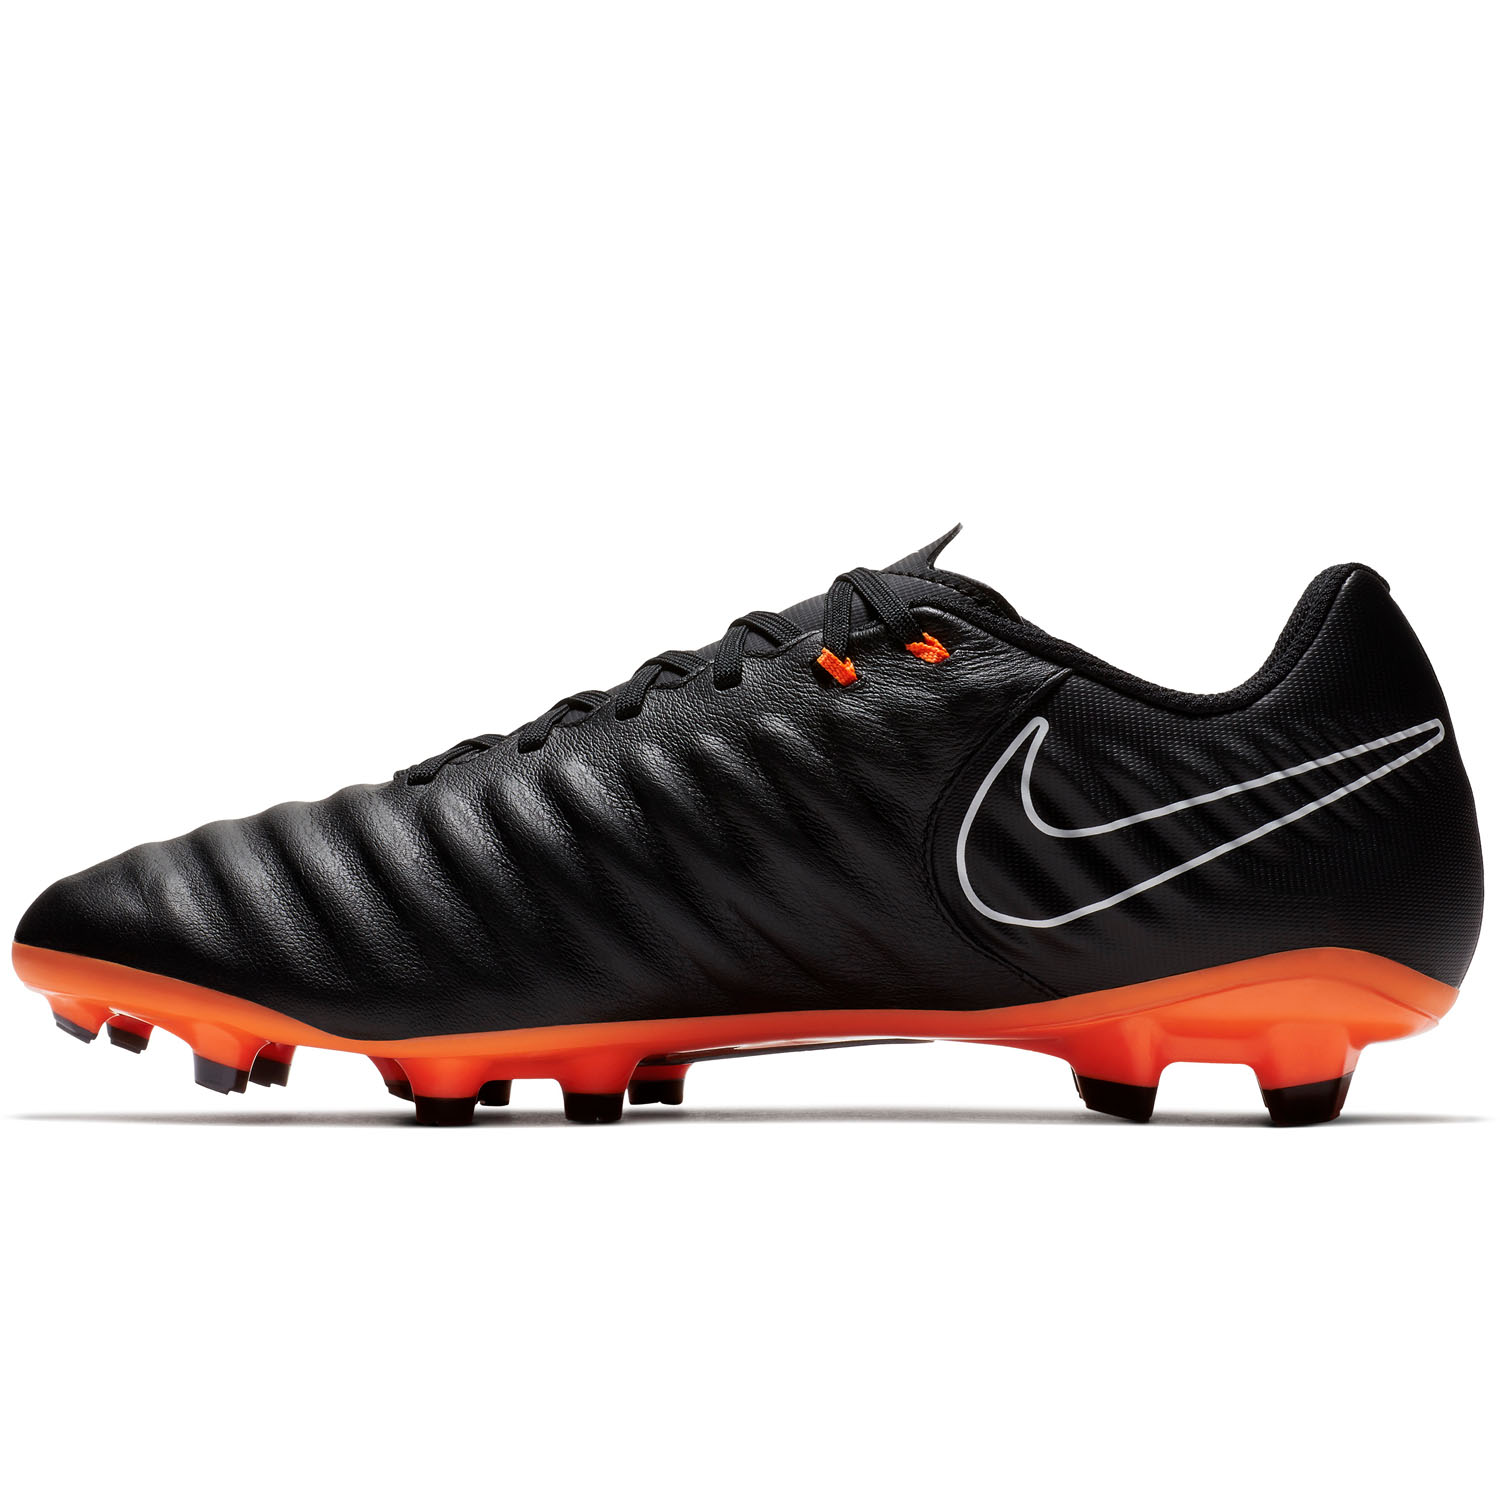 Nike Legend 7 Academy Men's ... Firm Ground Soccer Cleats 584Fqf3Z